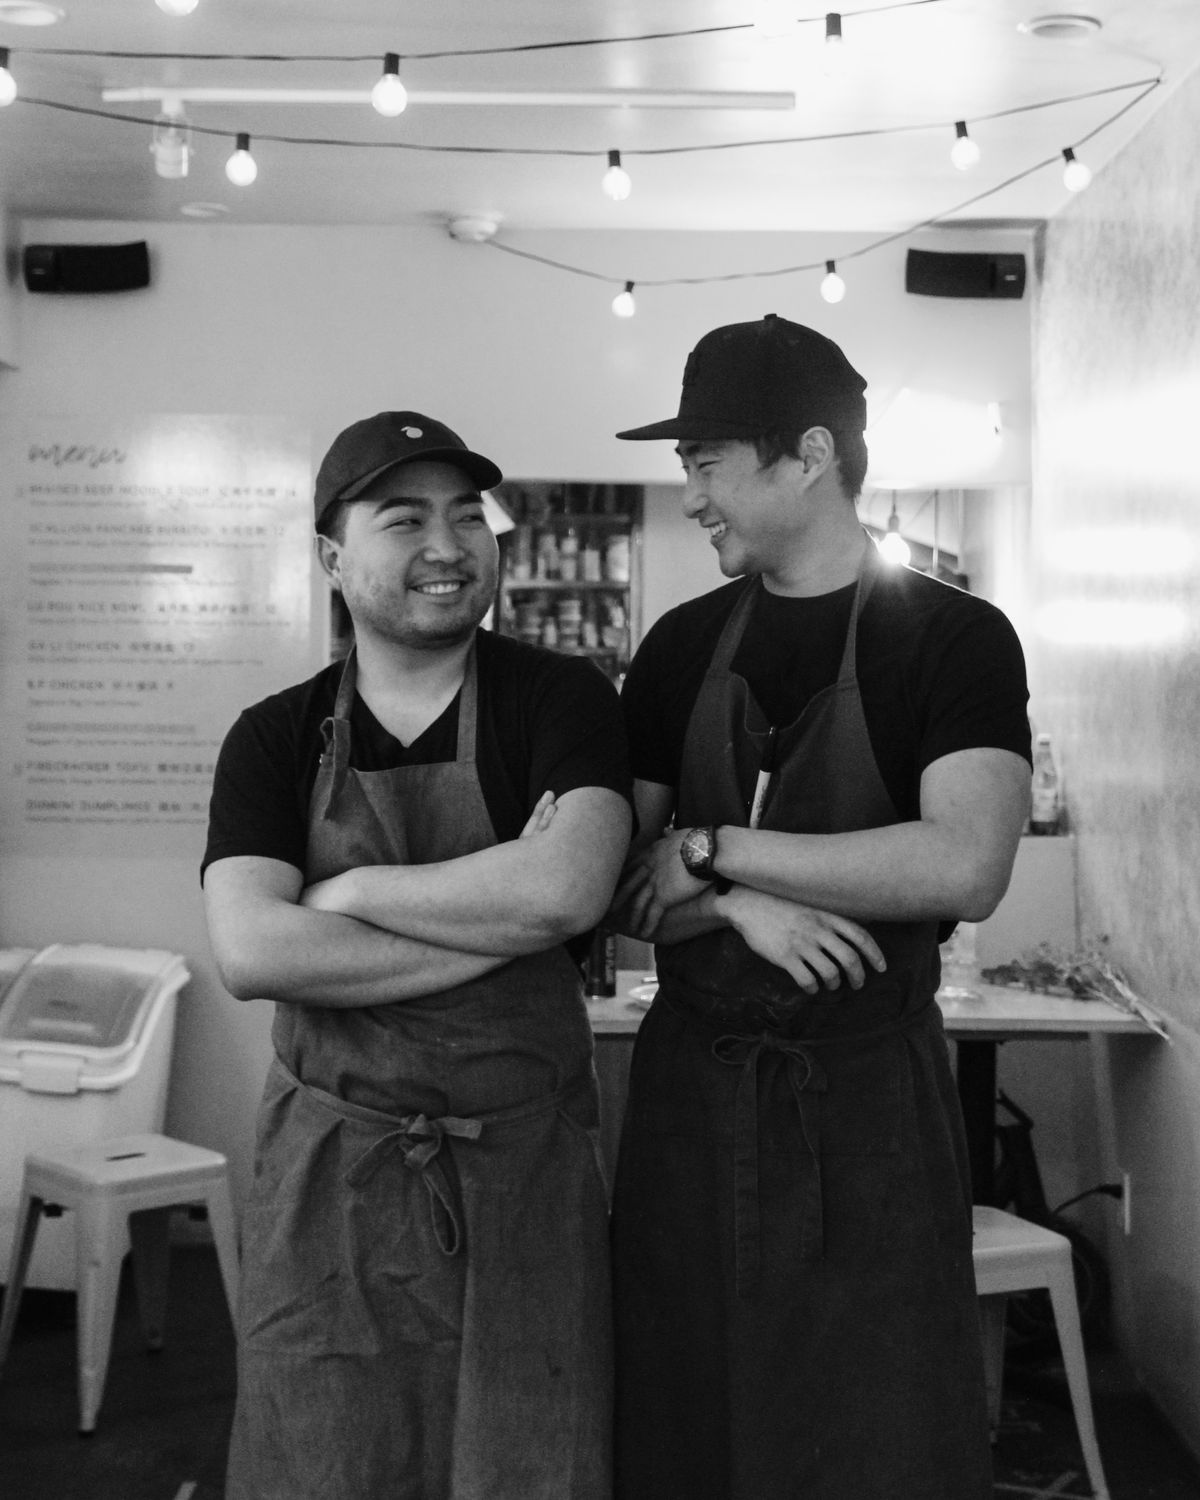 Two chefs wearing aprons in a black and white photo looking at each other and smiling